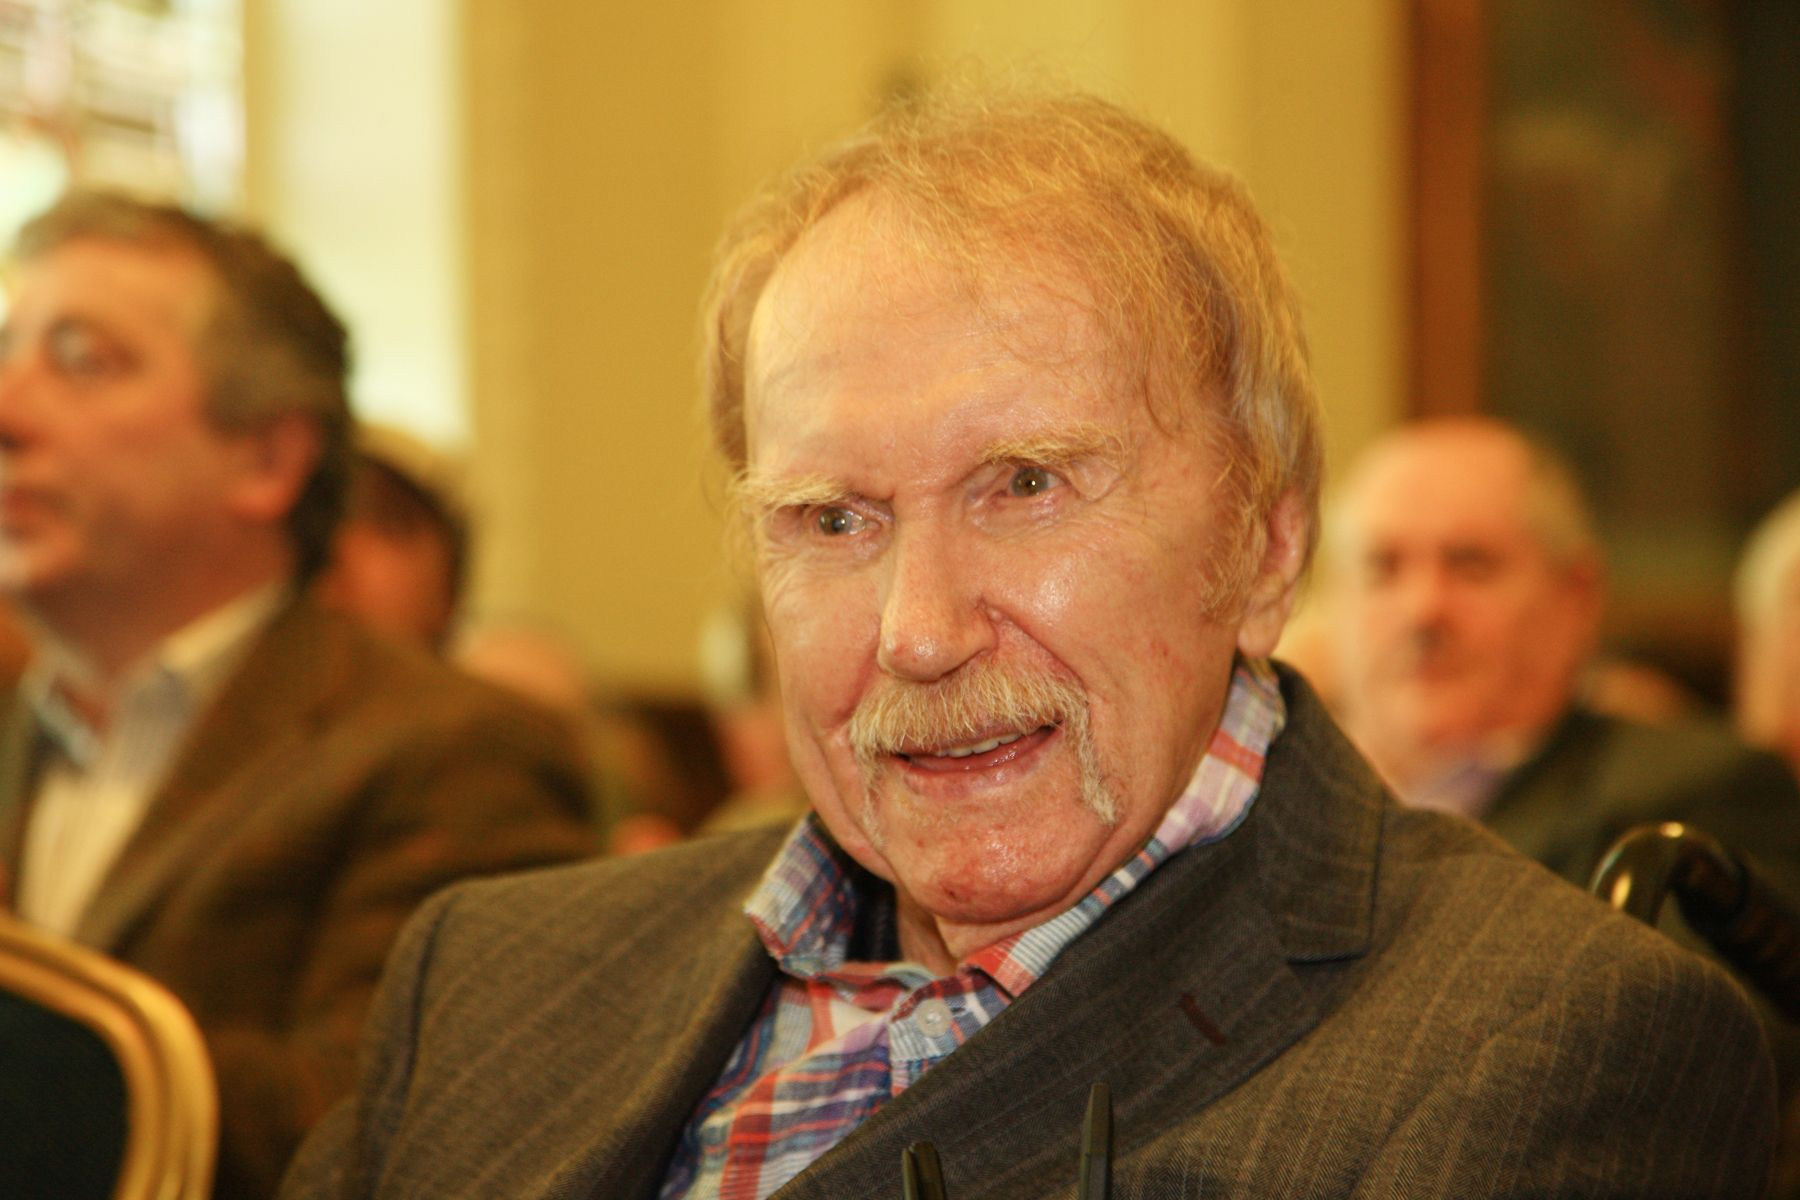 TRIBUTE: Liam Friel is composing a musical work to celebrate the life and work of Pádraic Fiacc